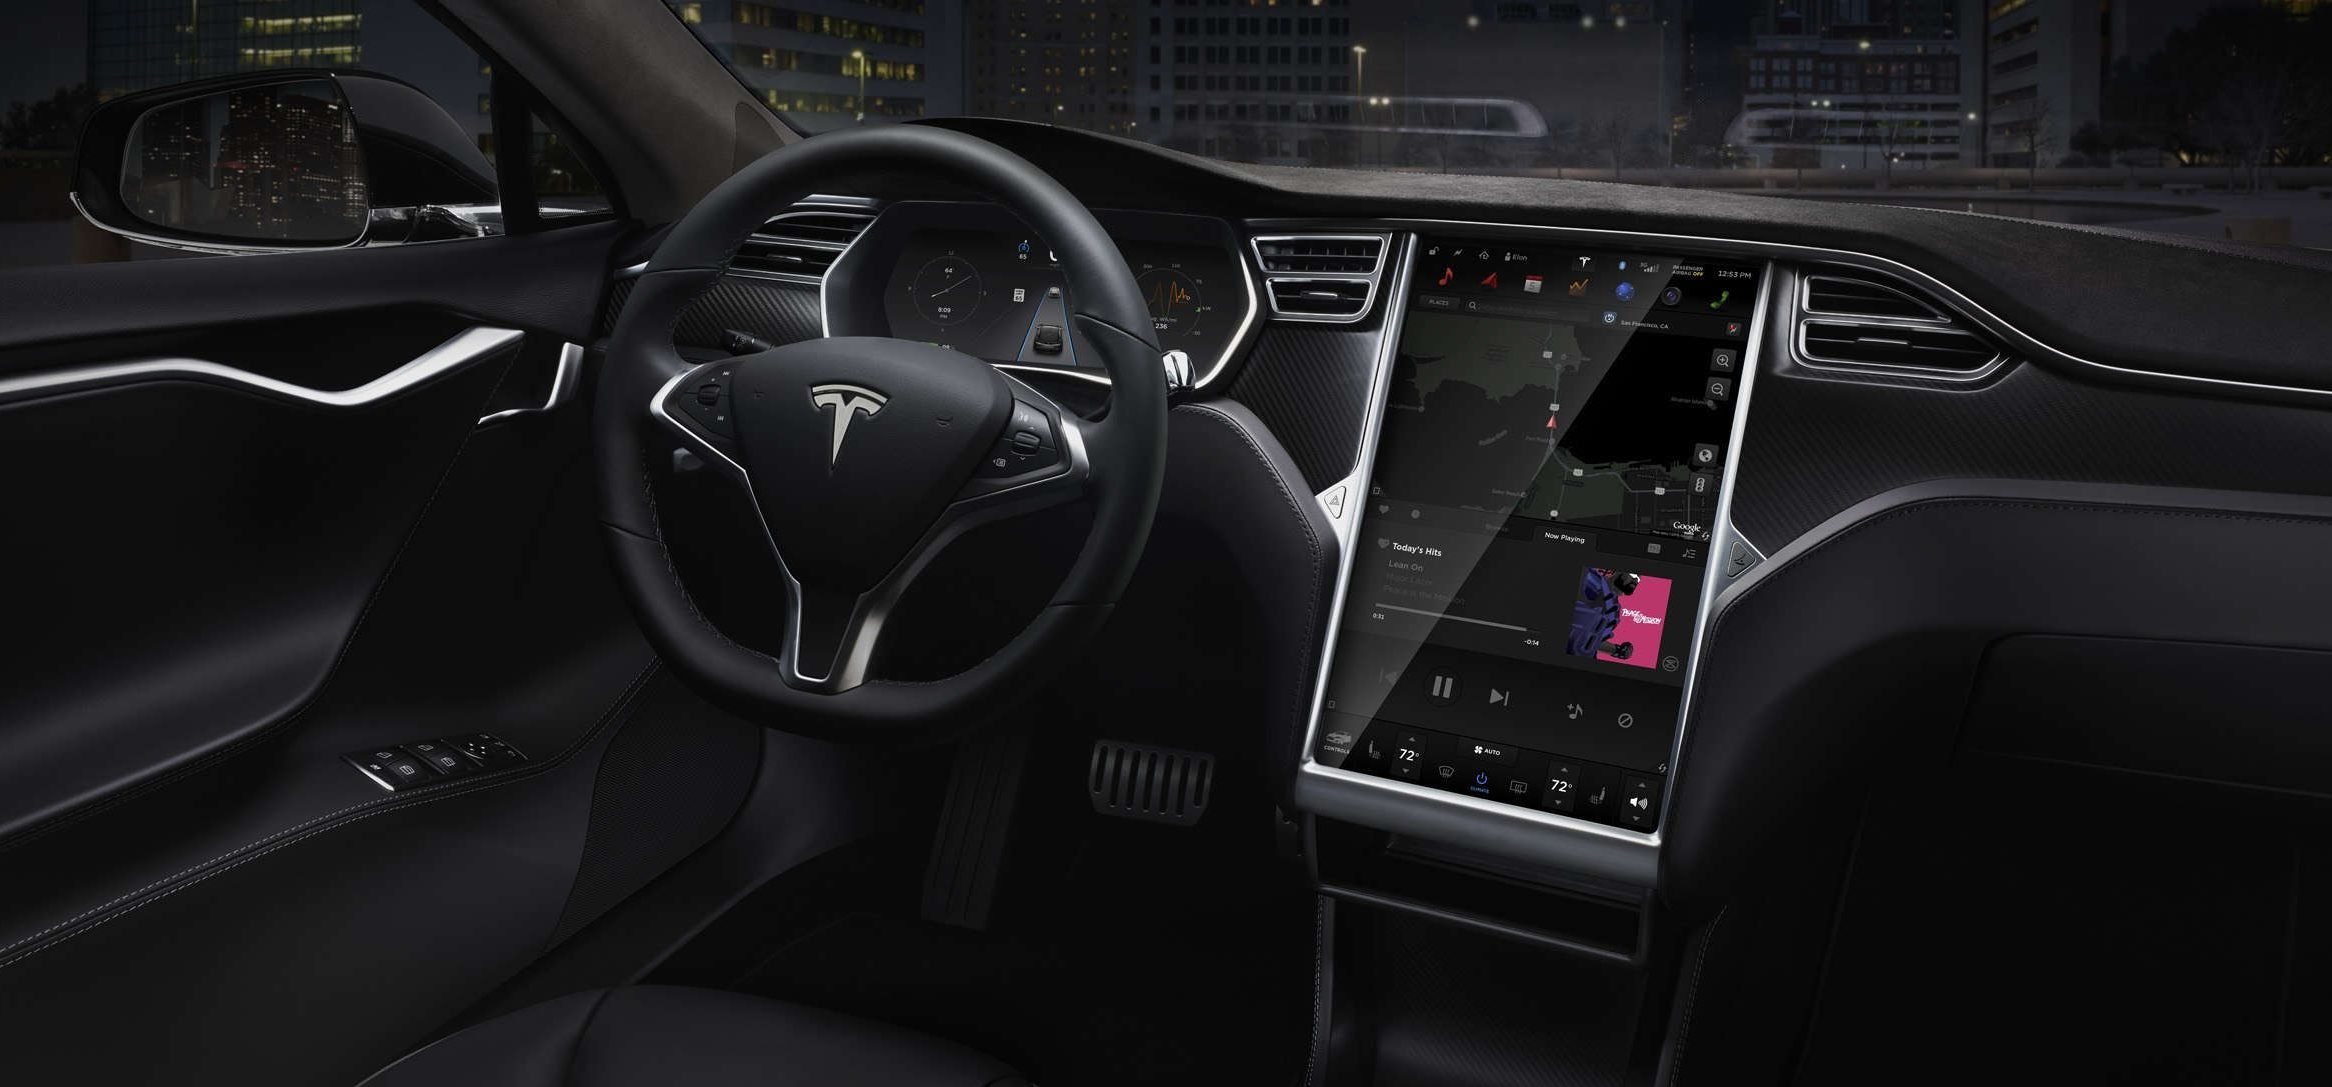 Tesla 8.0 software update